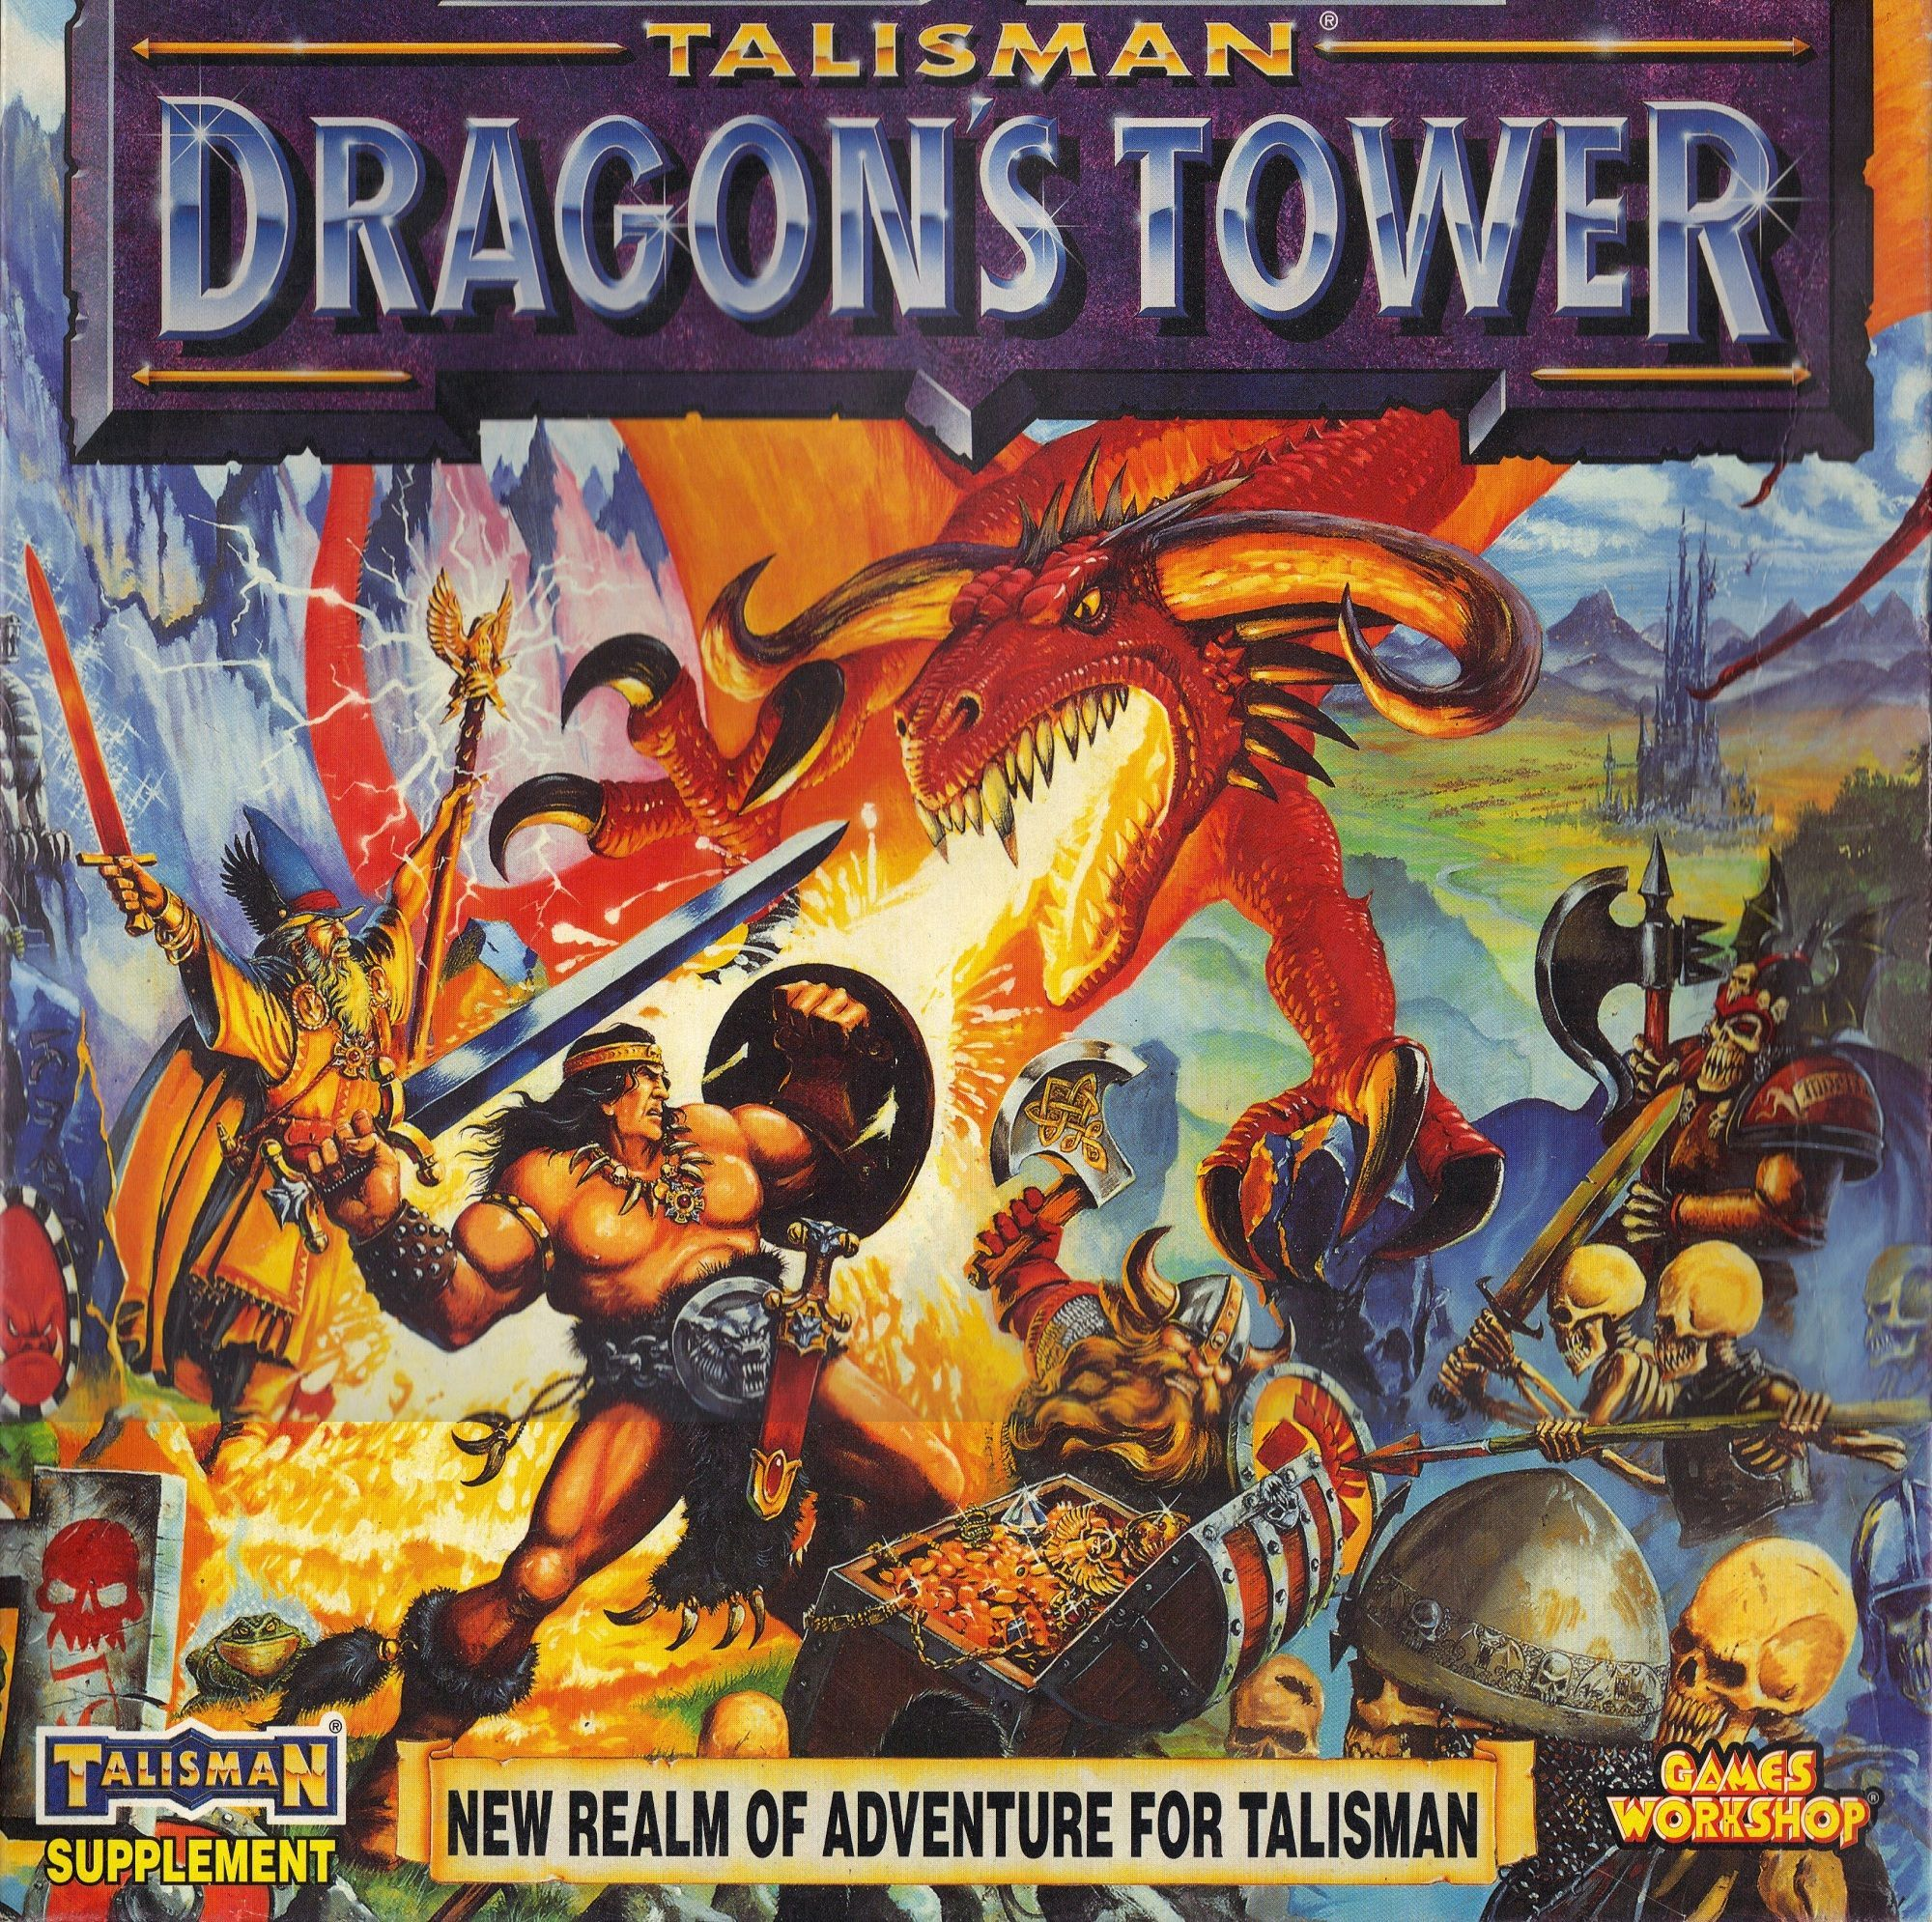 Talisman (third edition): Dragon's Tower